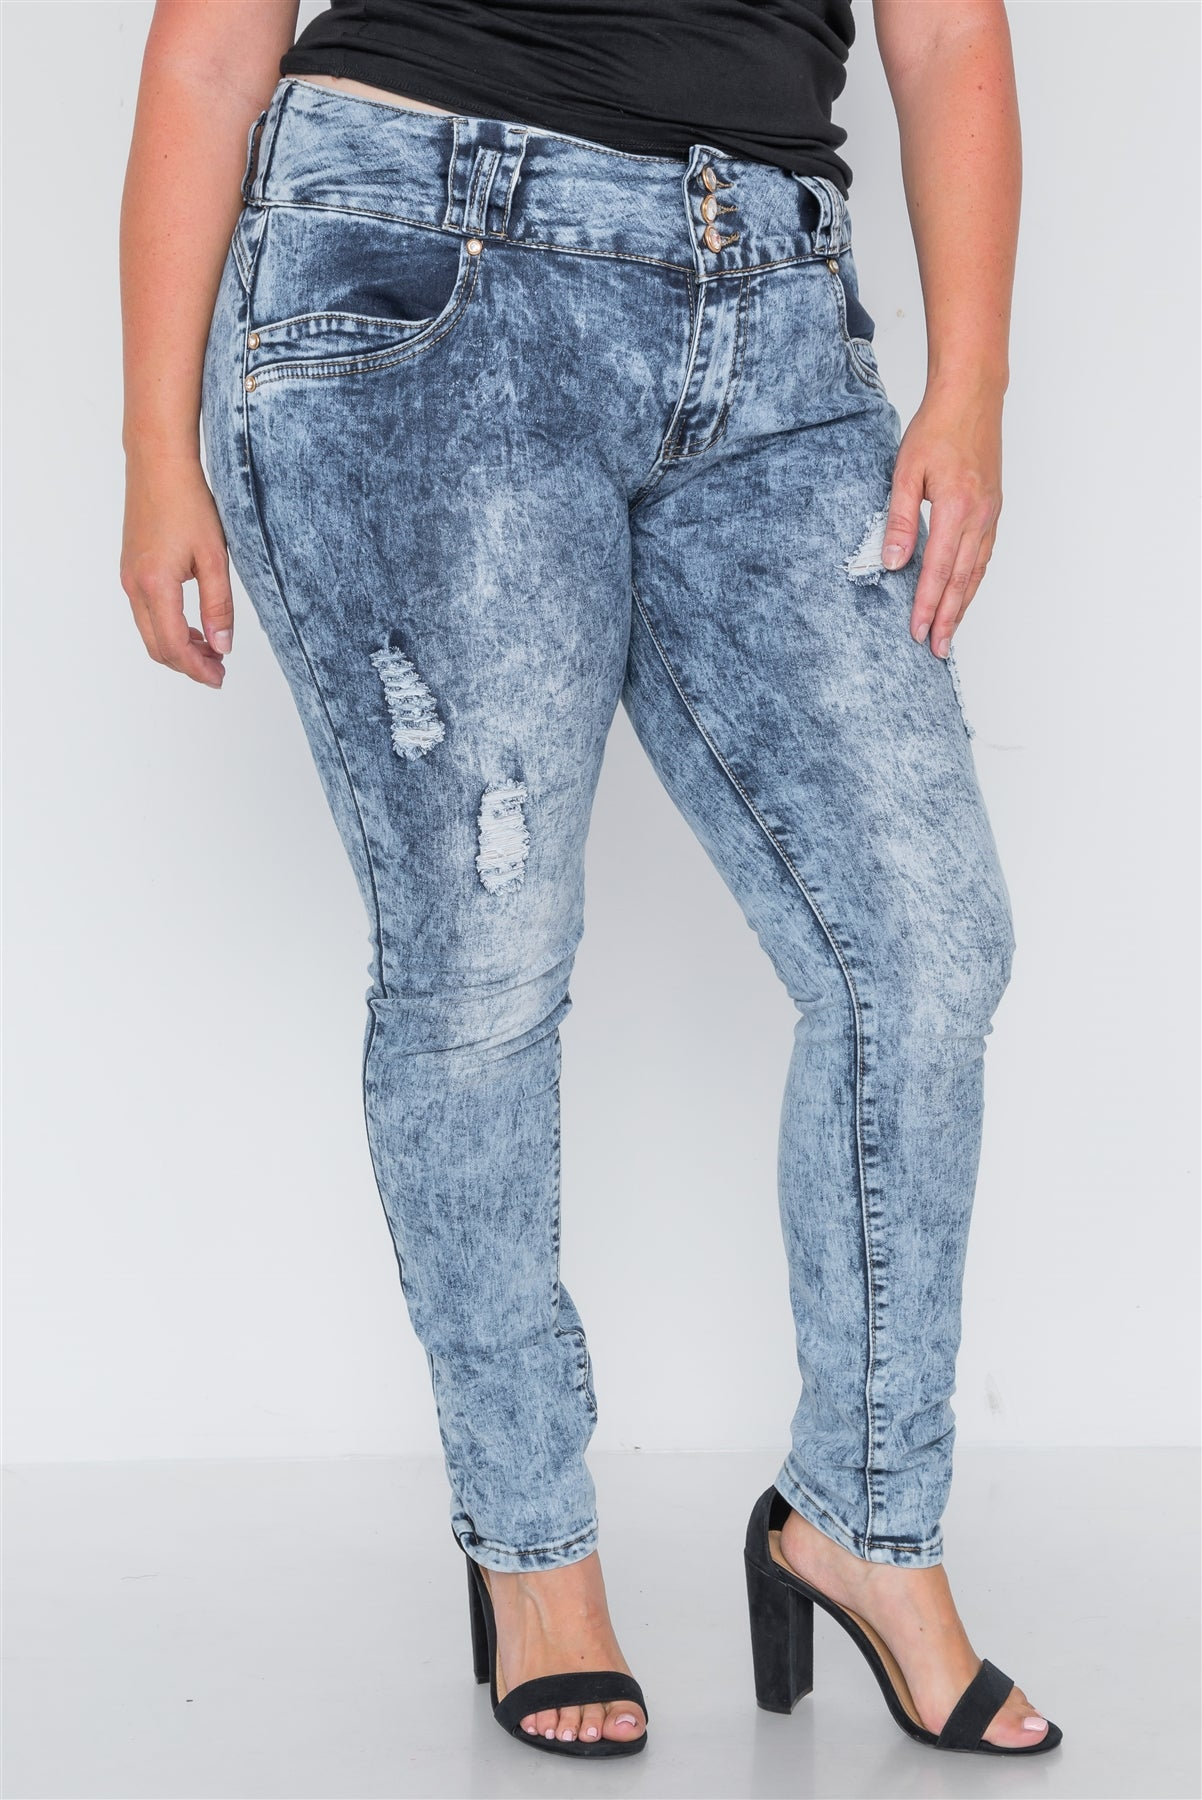 Plus Size Dark Denim Distressed Skinny Jeans - FitBeautyTrends